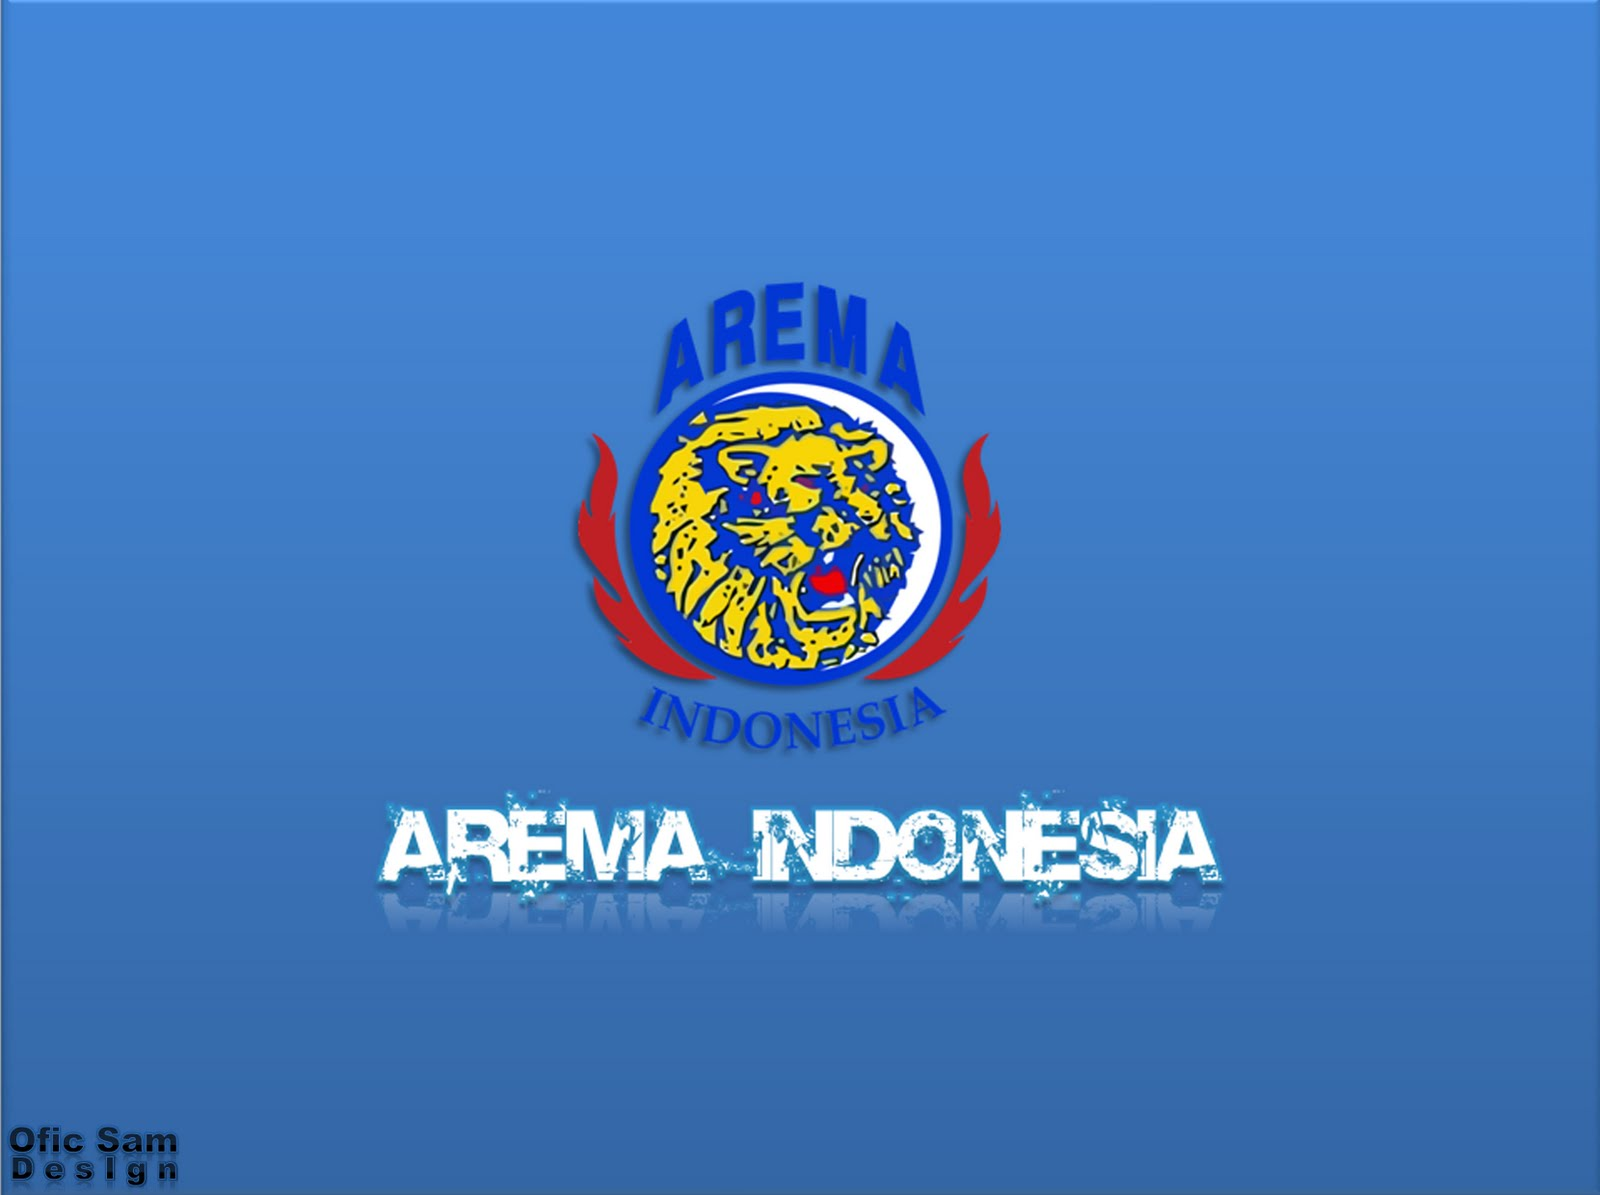 http://2.bp.blogspot.com/-x3fG9jS4lJU/Tb-JguhBlXI/AAAAAAAAAJk/C4RHxTR9gm8/s1600/wallpaper+arema+indonesia+mei+2011+by+ofic+sam+_boy_gassipers@yahoo.co.id+%286%29.jpg